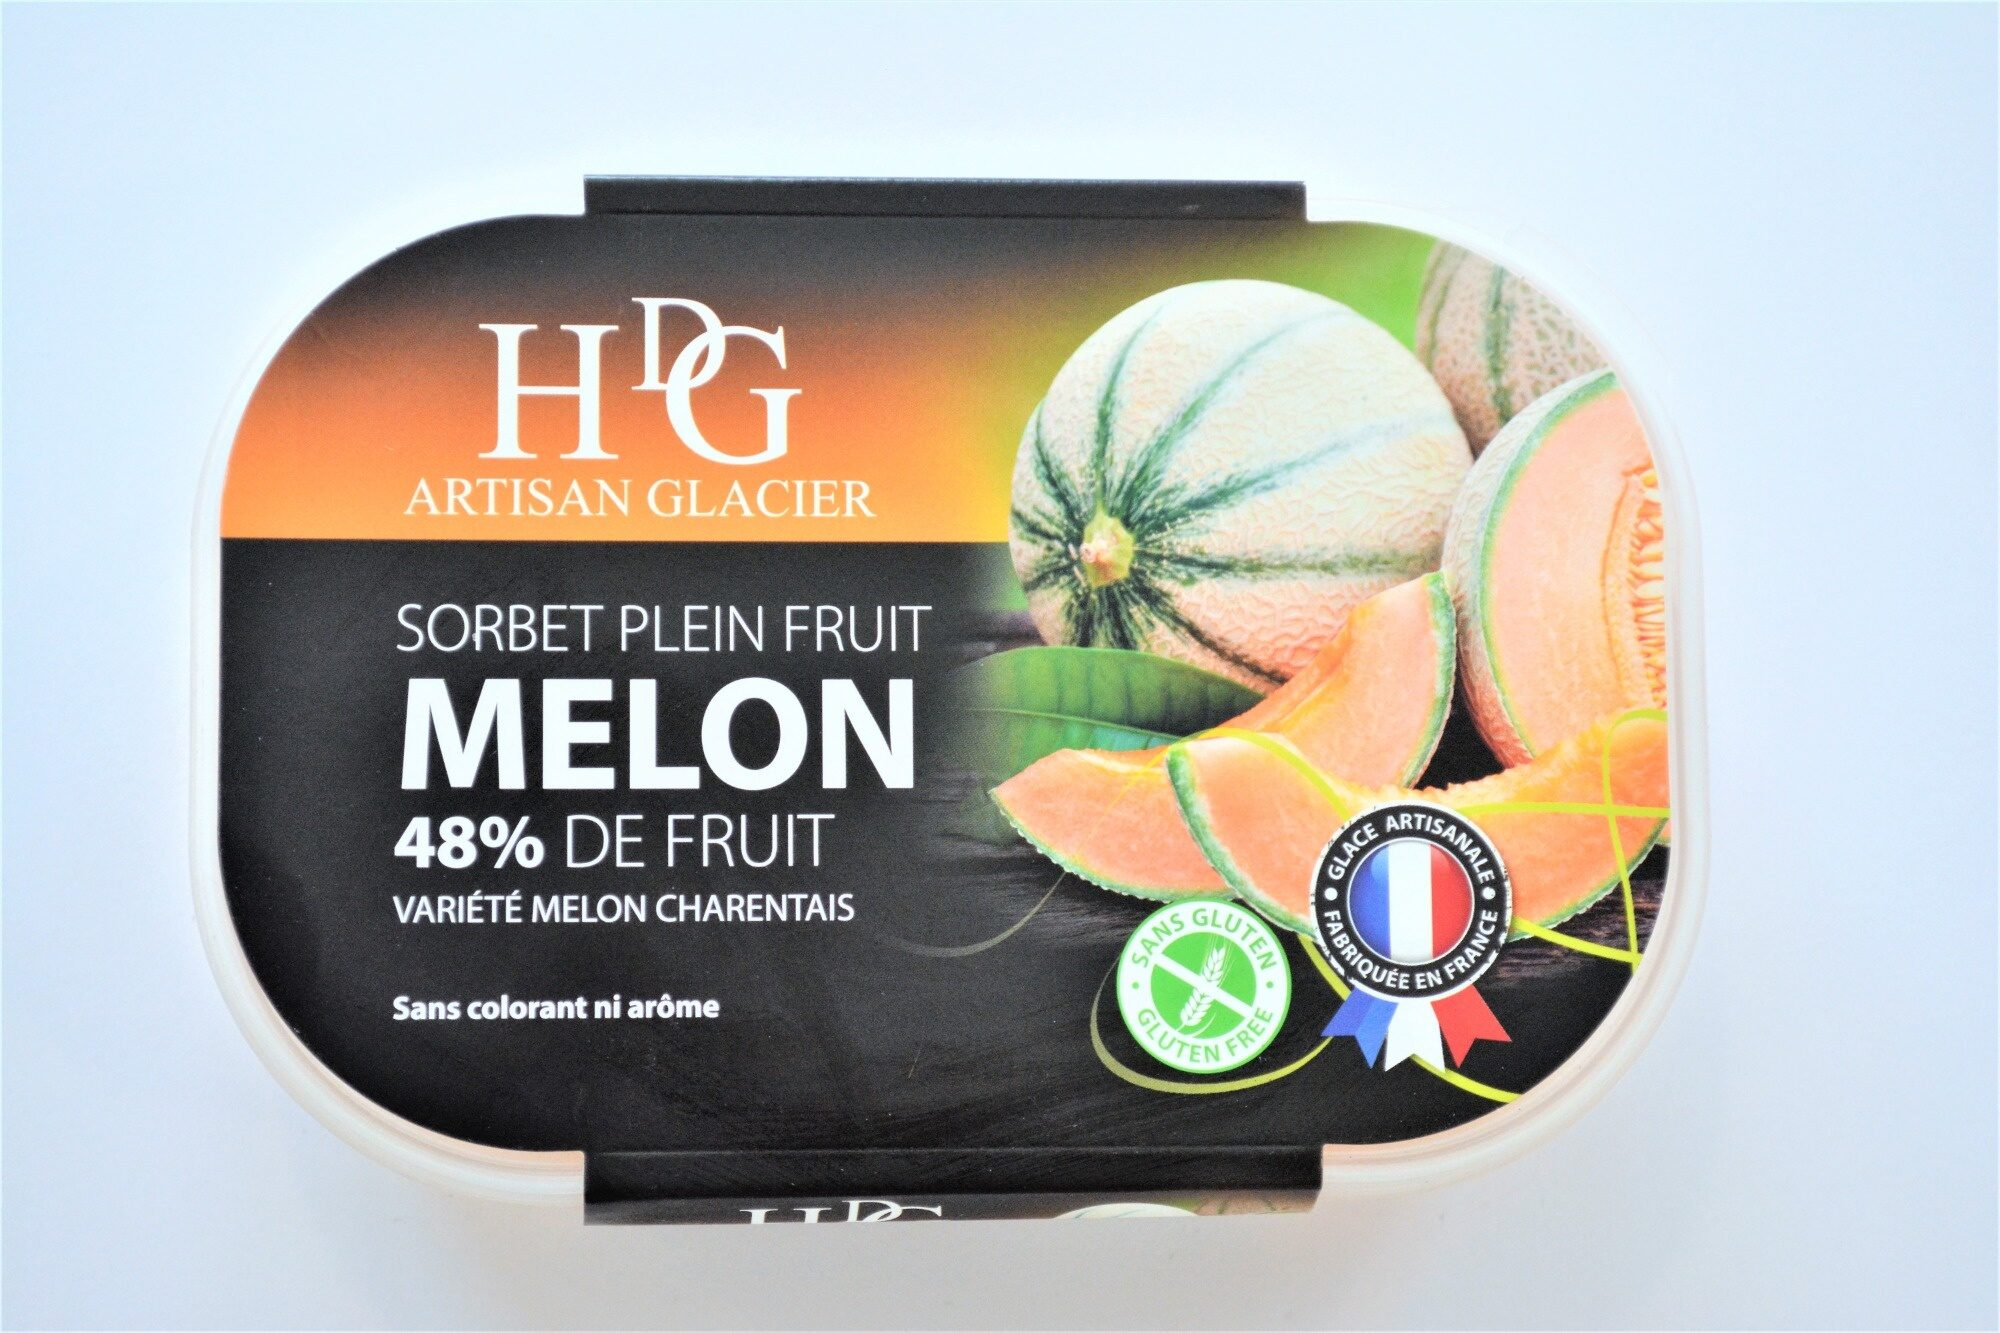 Sorbet plein fruit MELON, 48% de fruit - Produit